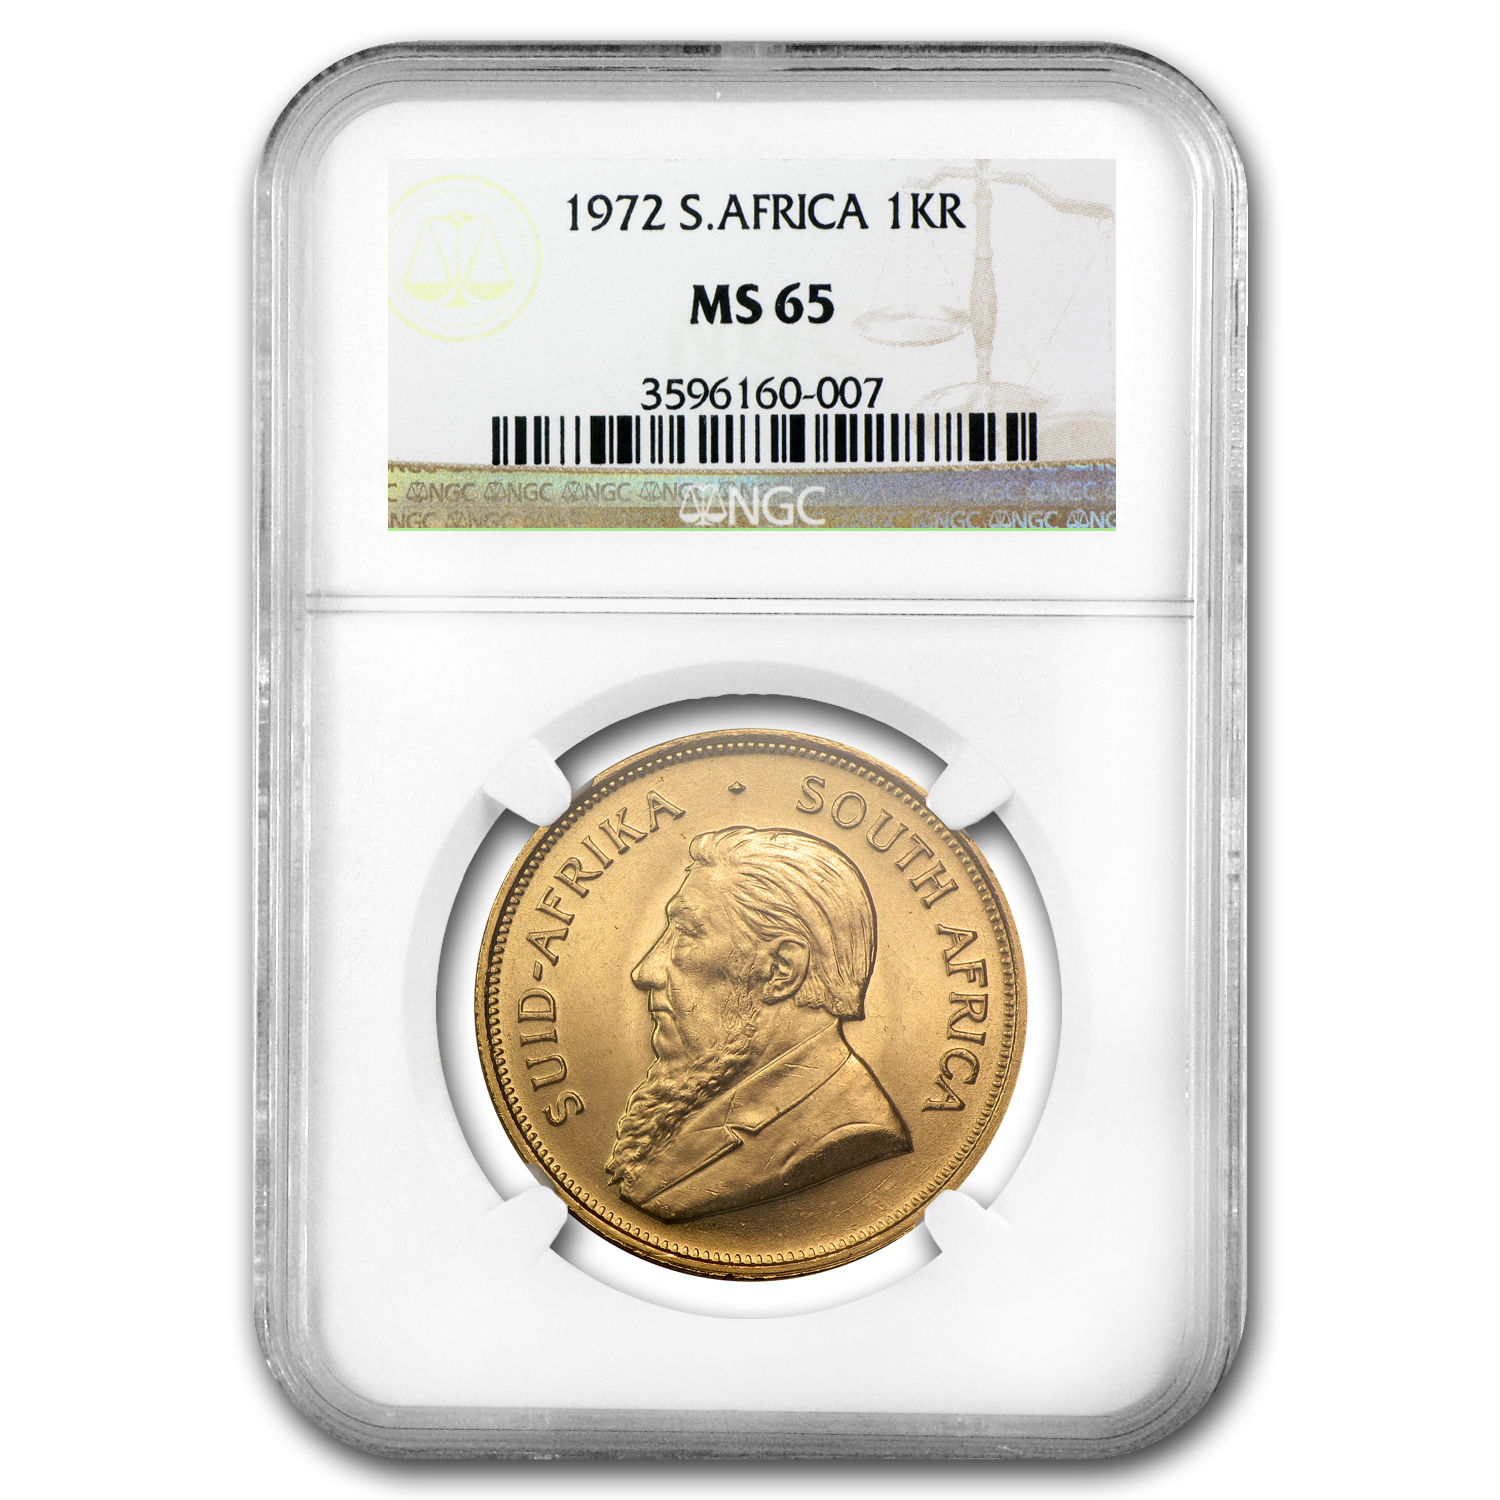 1972 South Africa 1 oz Gold Krugerrand MS-65 NGC